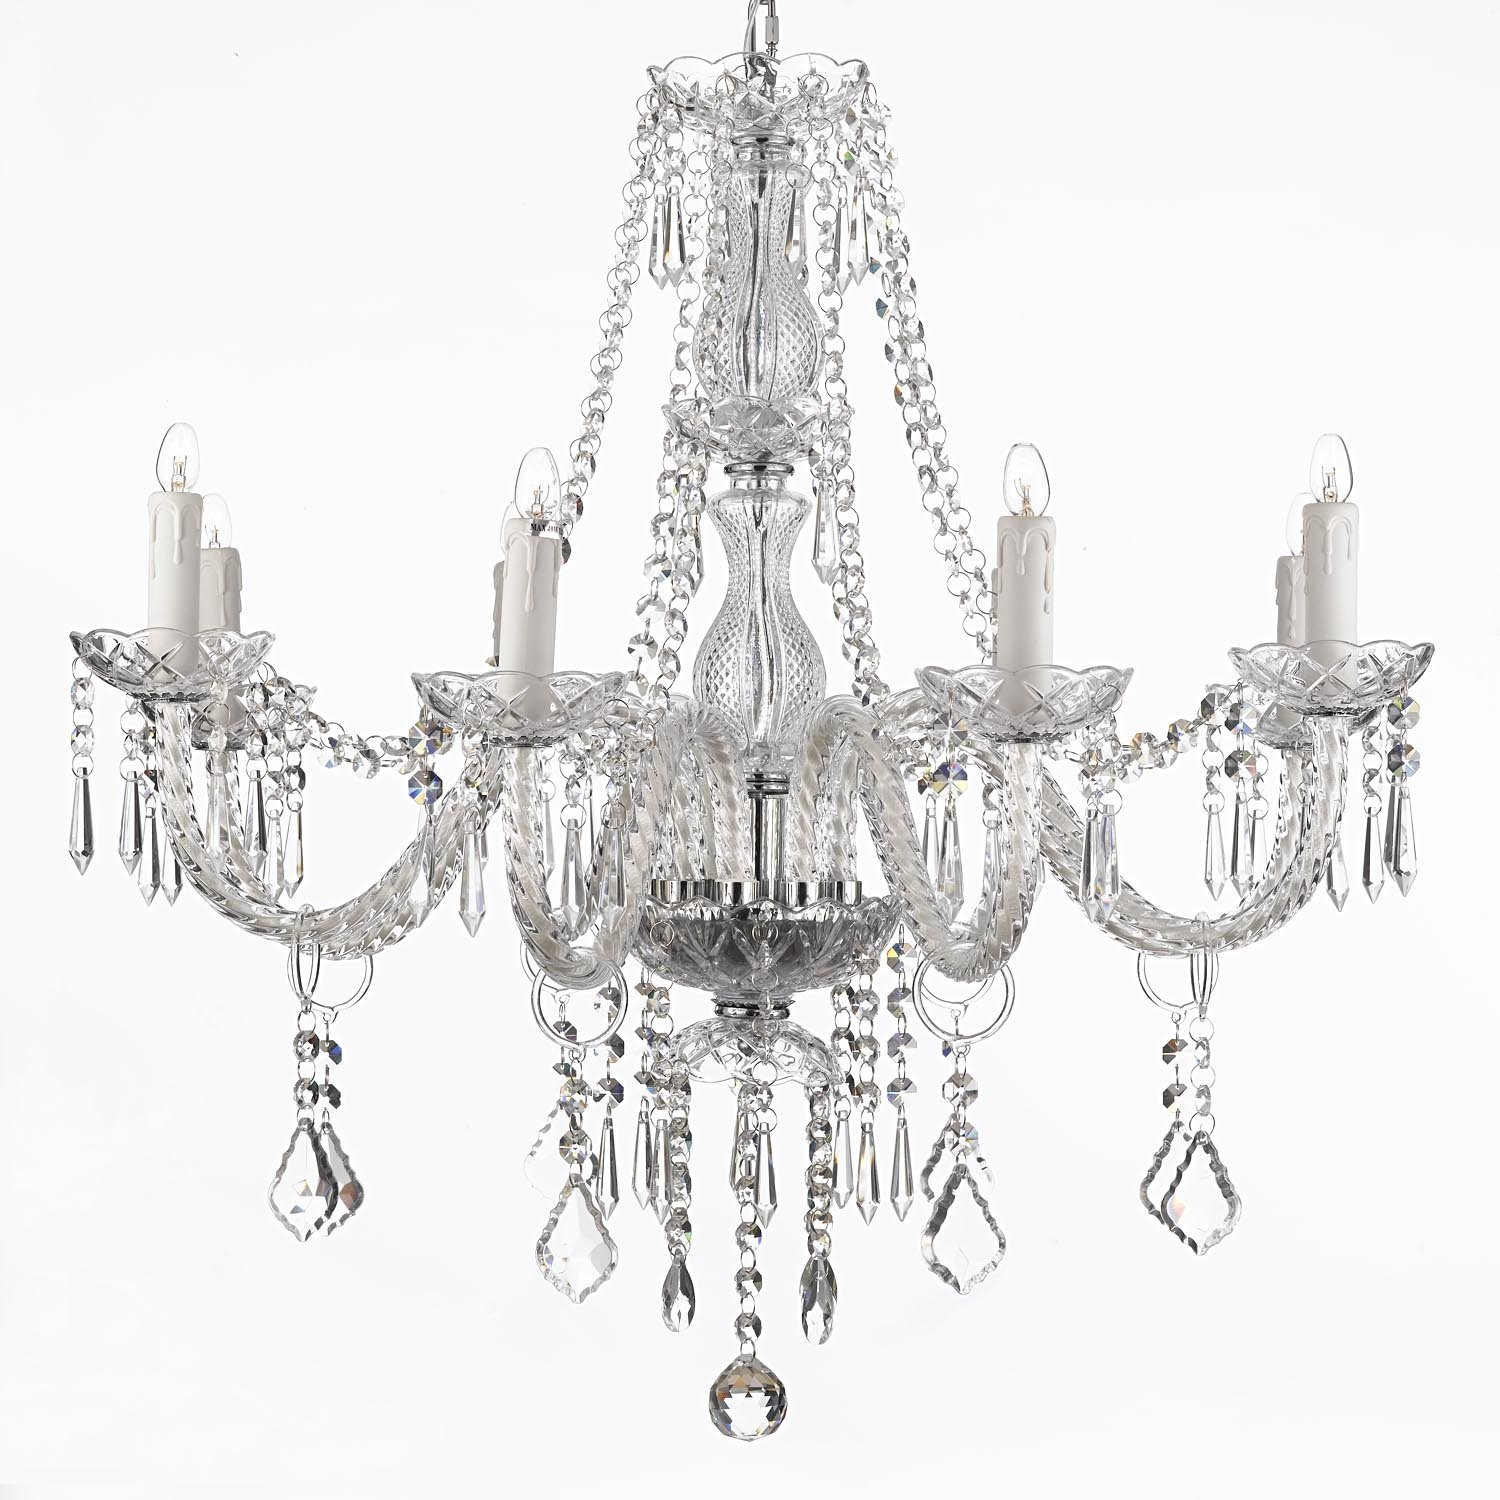 Crystal Chandelier Lighting 28ht X 28wd 8 Lights Fixture Pendant Regarding Faux Crystal Chandeliers (View 3 of 25)